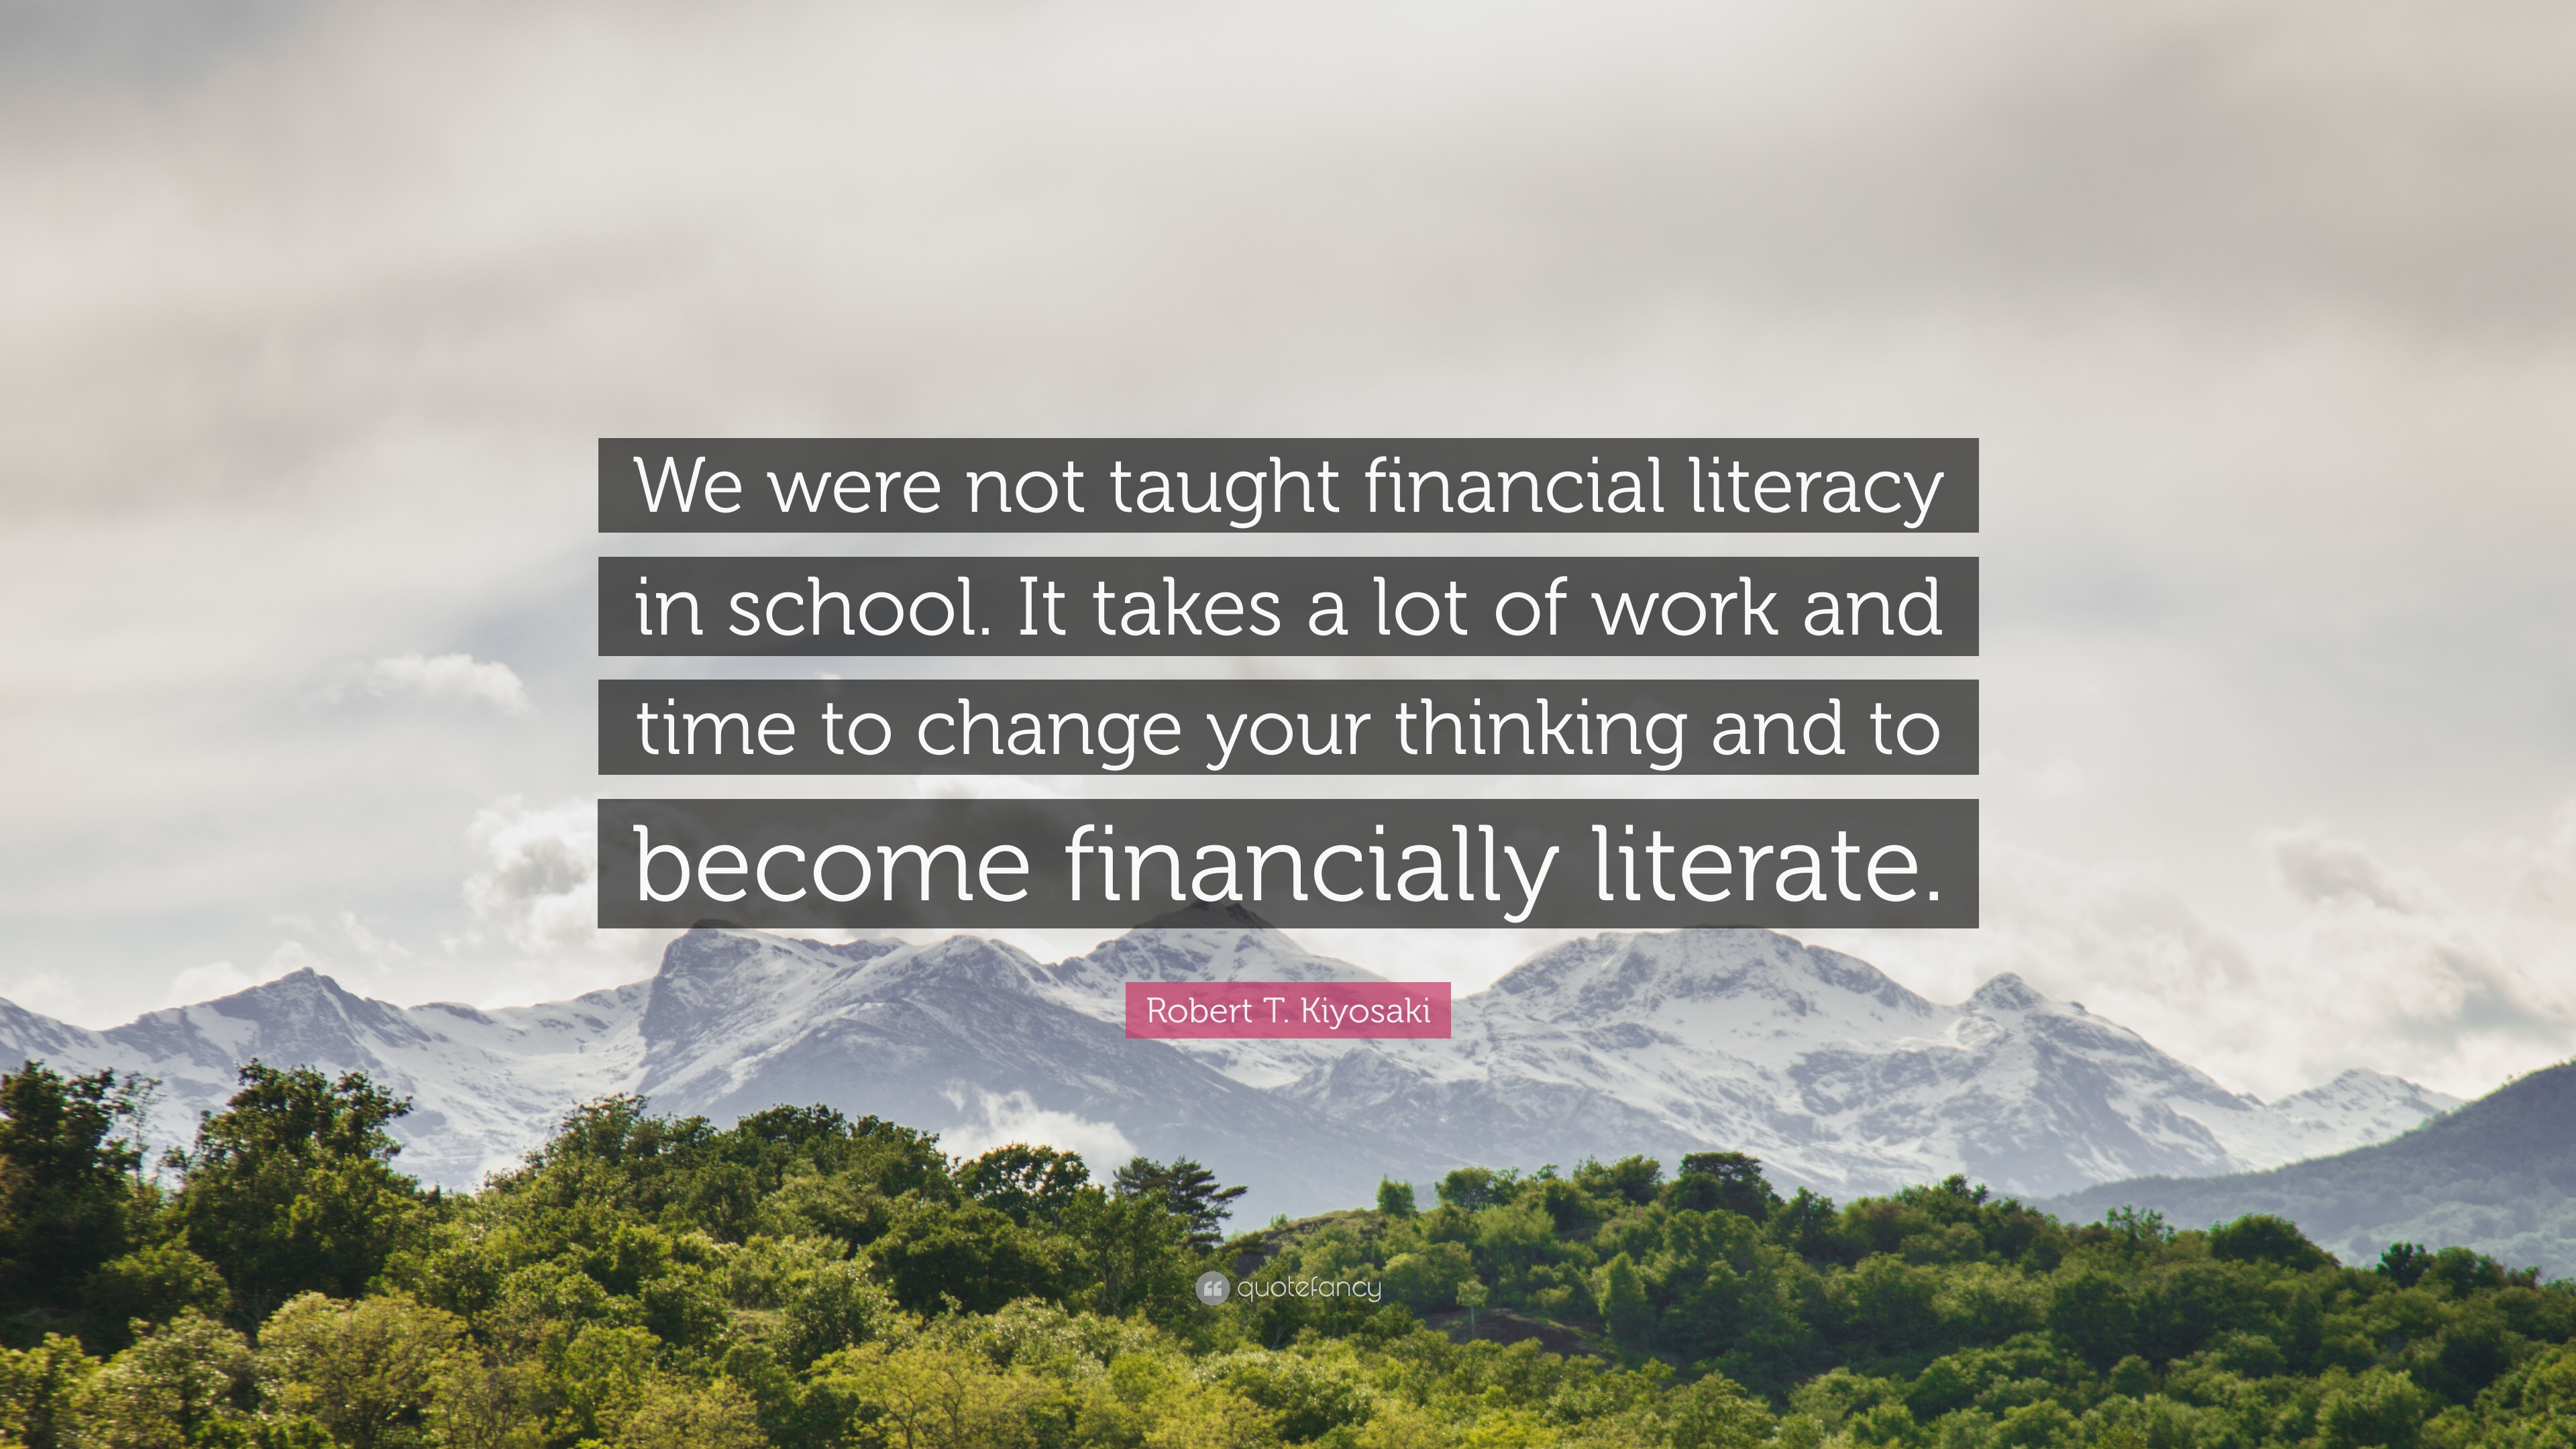 Robert T Kiyosaki Quote We Were Not Taught Financial Literacy In